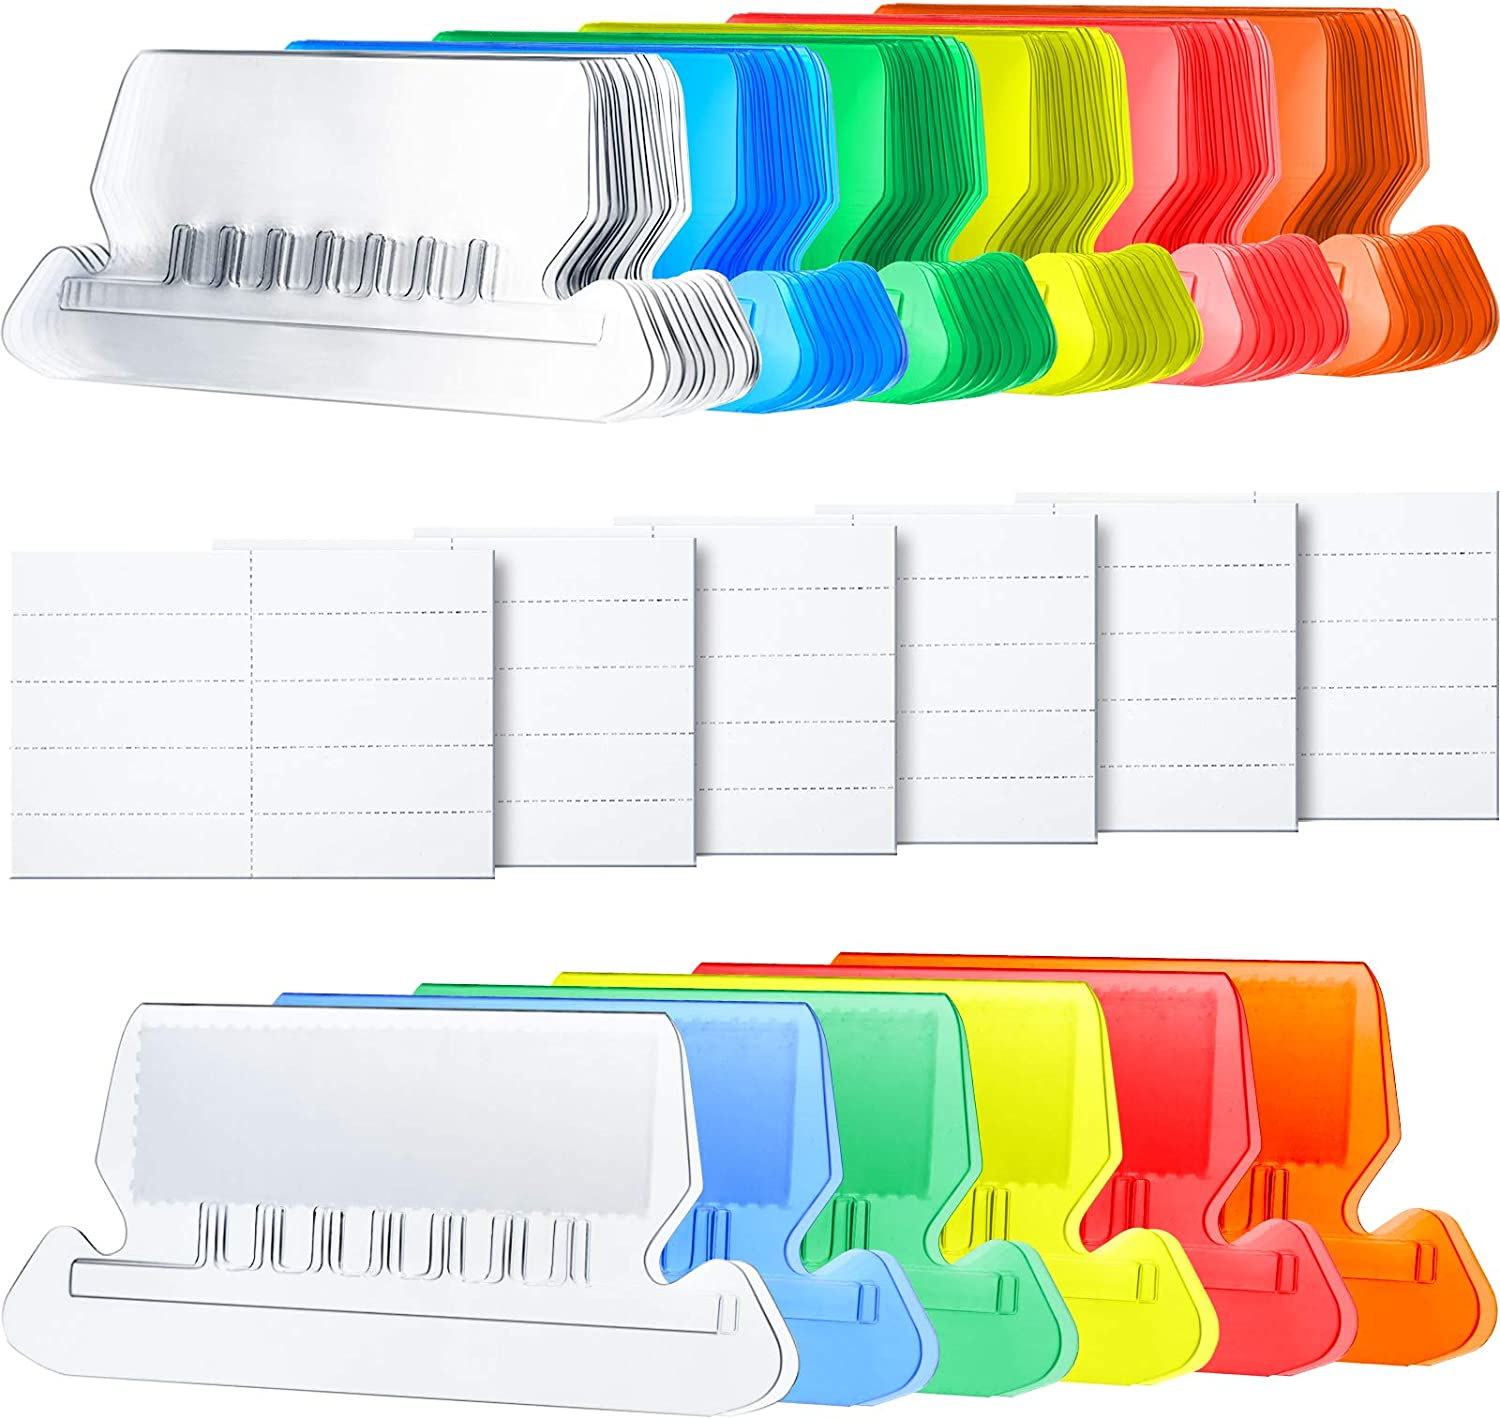 60 Sets, Flat Design Multicolor A 2 Inch Hanging Folder Tabs and Inserts for Organize and Distinguish Hanging Files Clear to Read